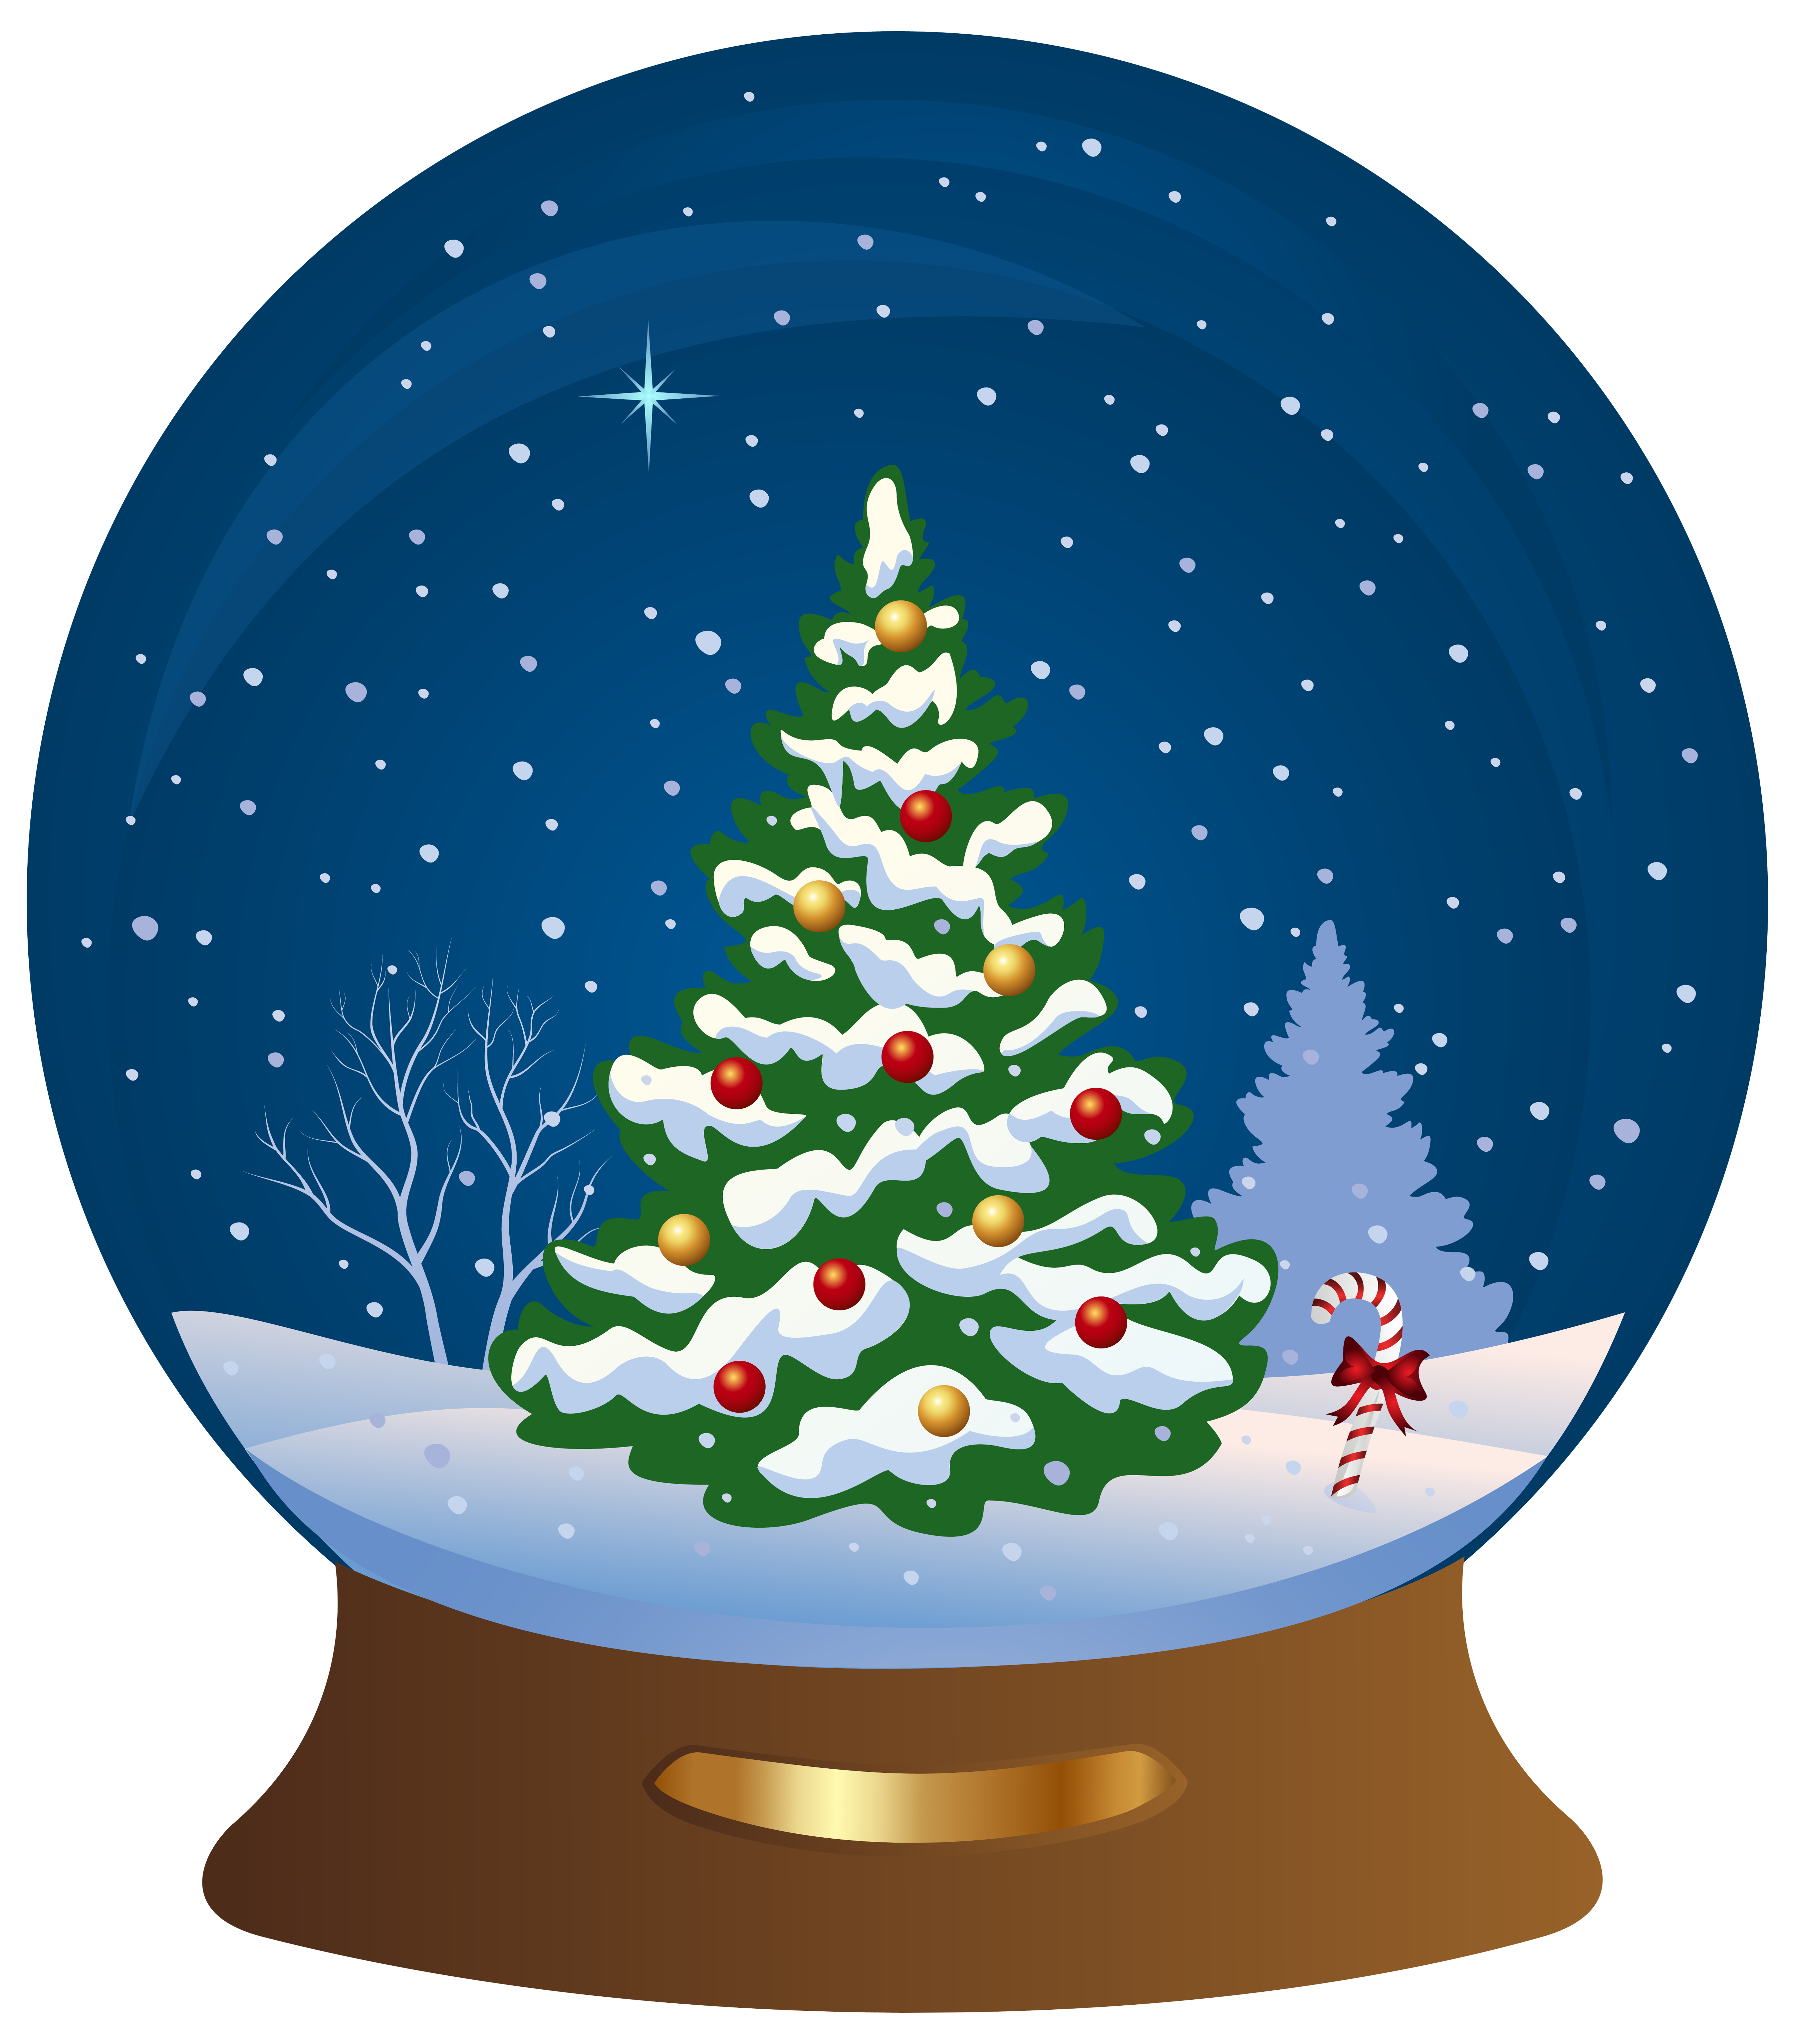 Snowglobe drawing scenery. Collection of christmas